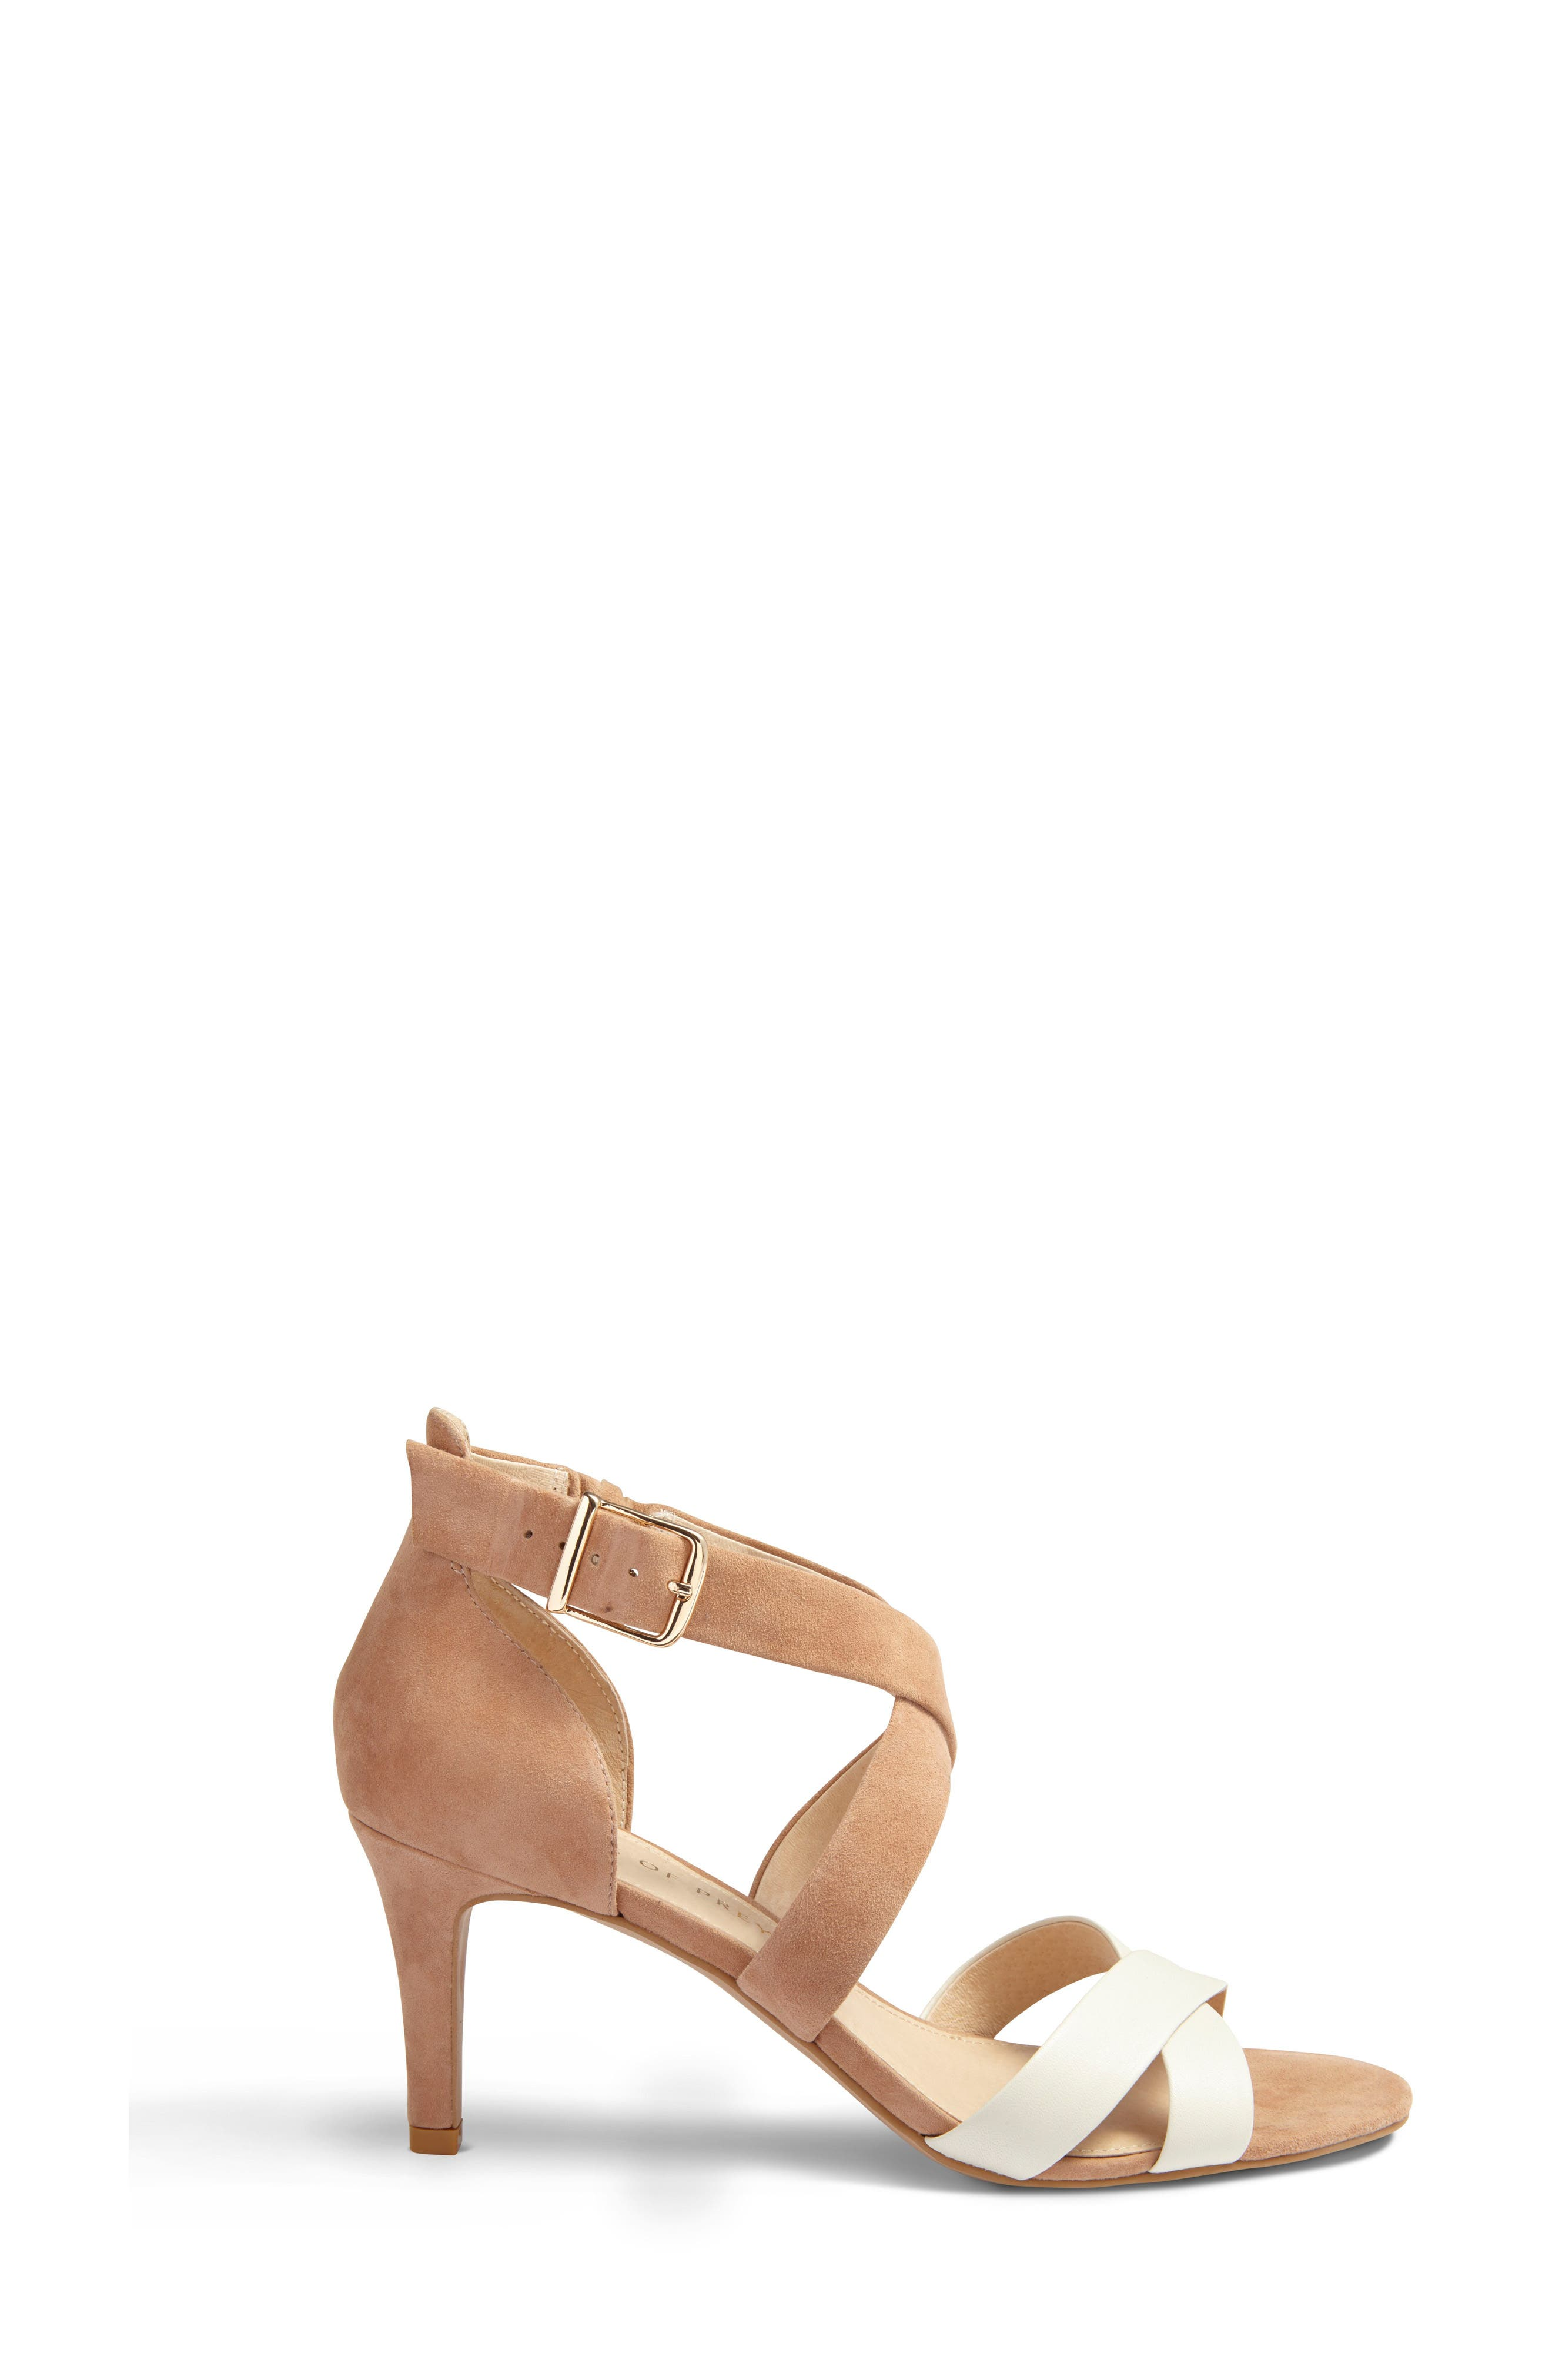 Crisscross Strappy Sandal,                             Alternate thumbnail 2, color,                             Tan Suede